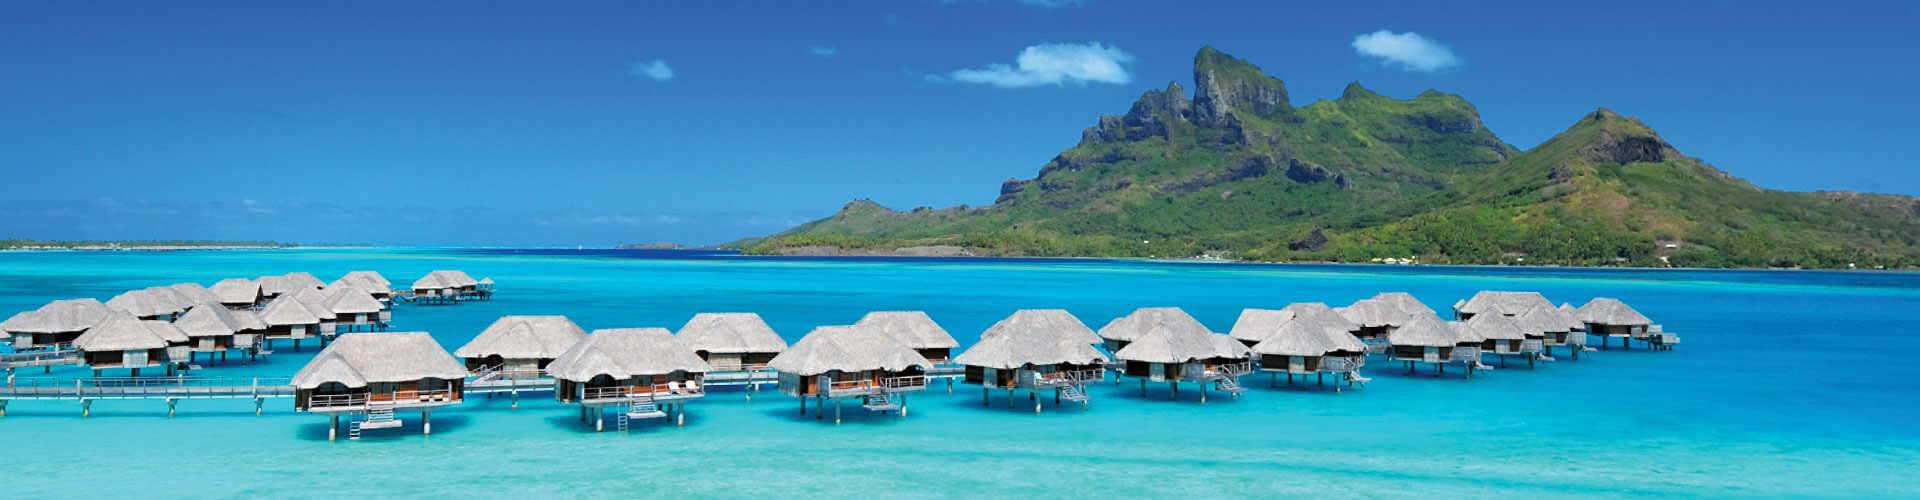 Overview of the hotel 4 seasons in Bora Bora